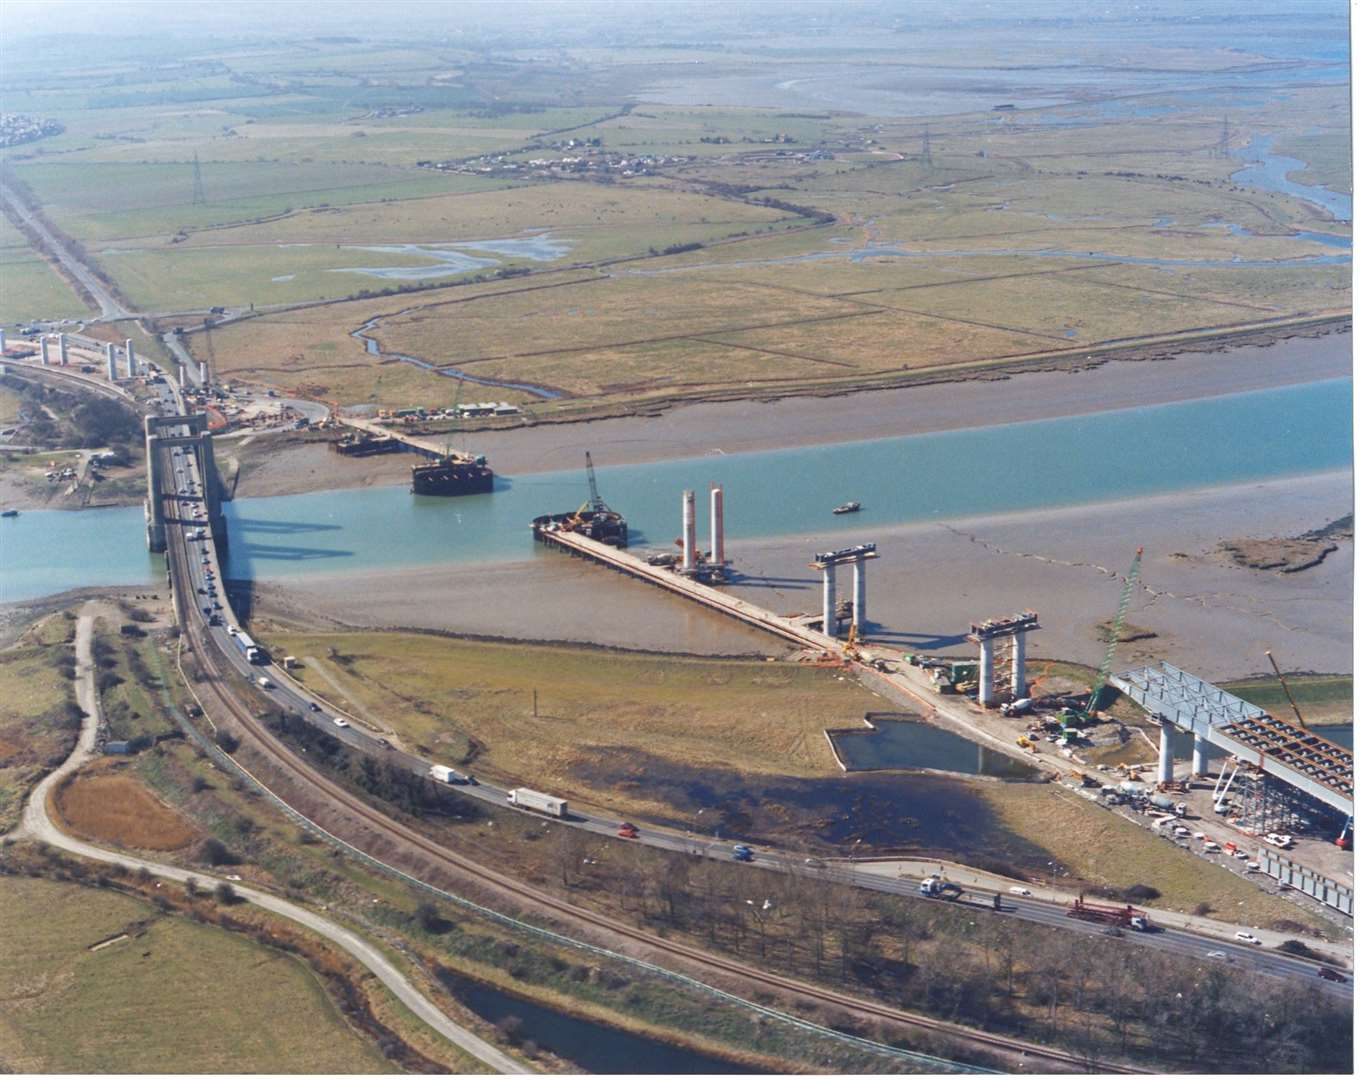 Aerial photographs showing progress of the Second Swale Crossing works taken in March 2005.